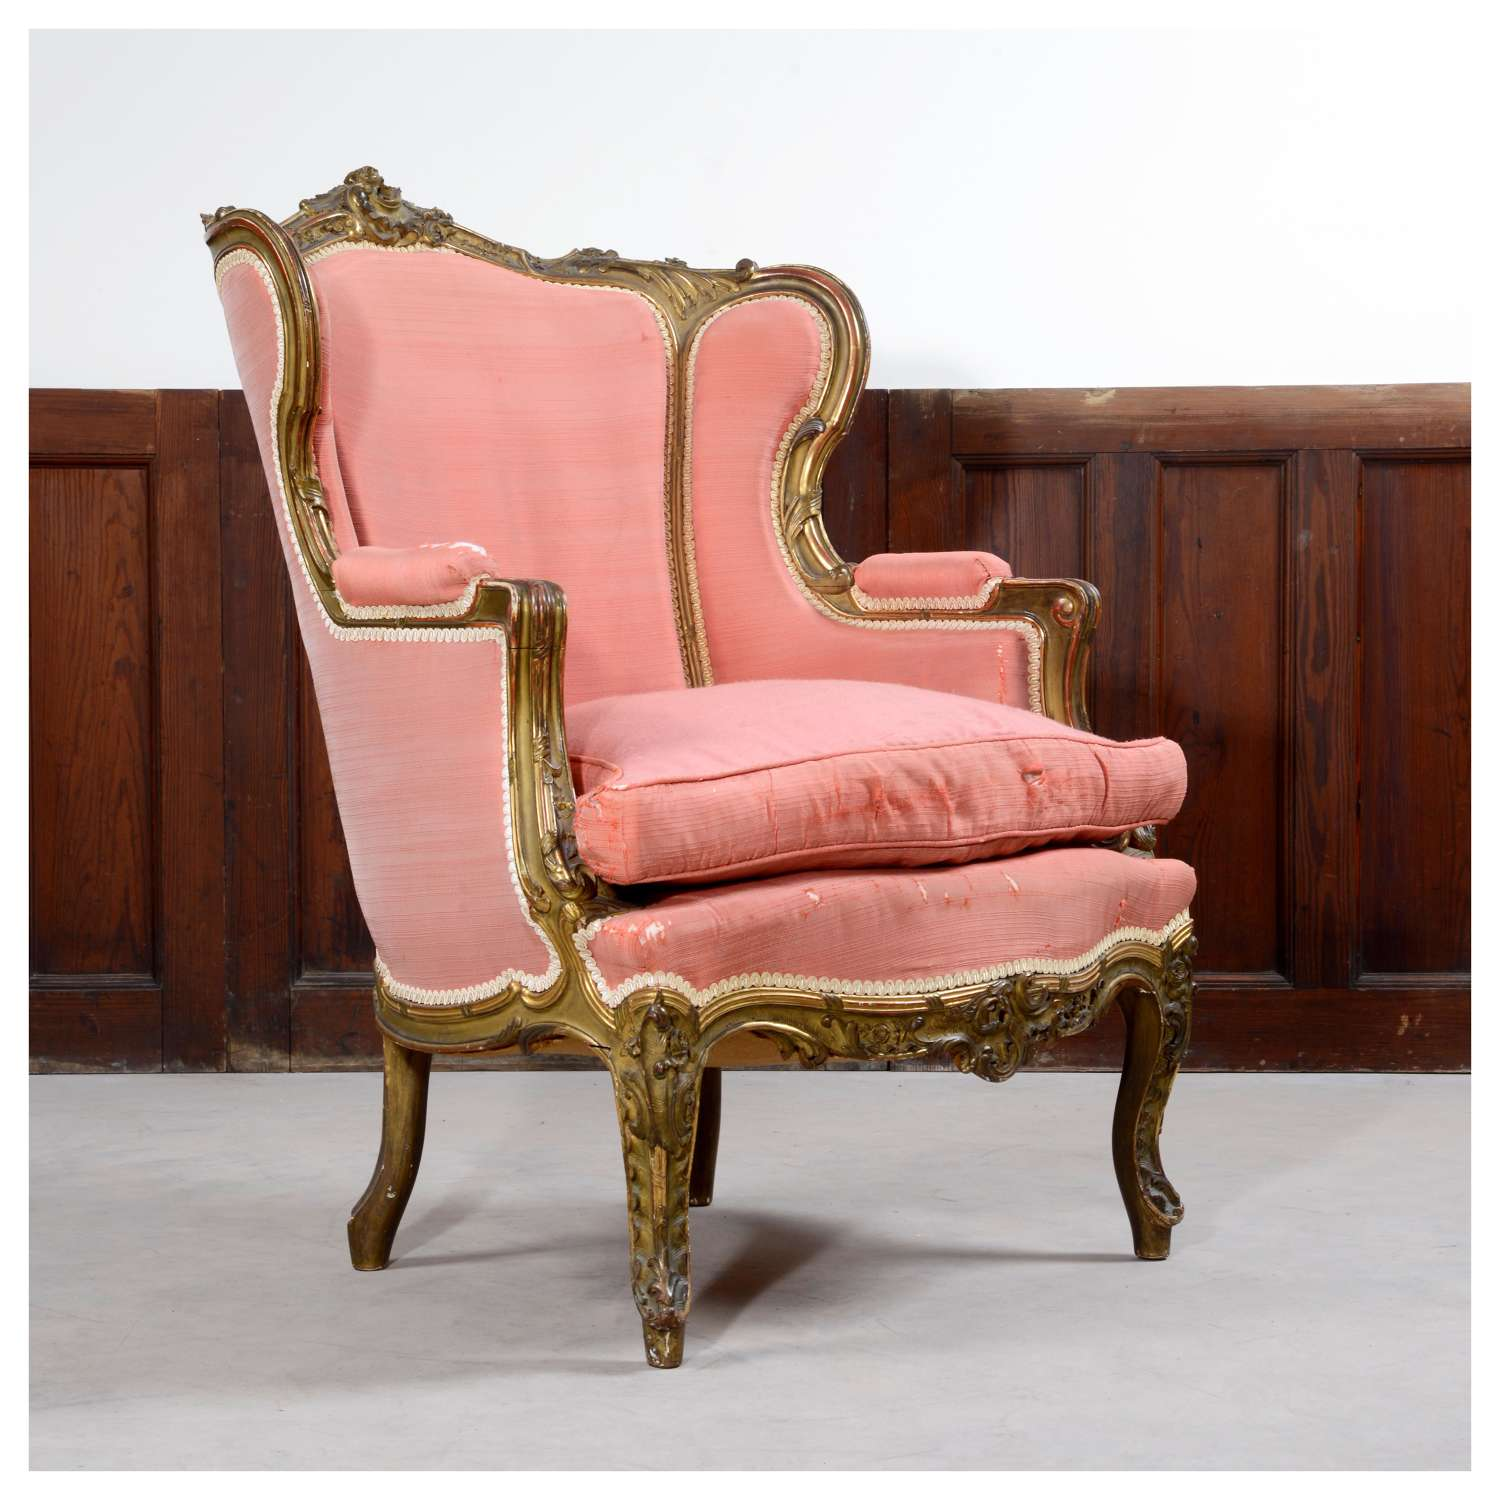 French Louis XV style gilt wing chair, or bergère